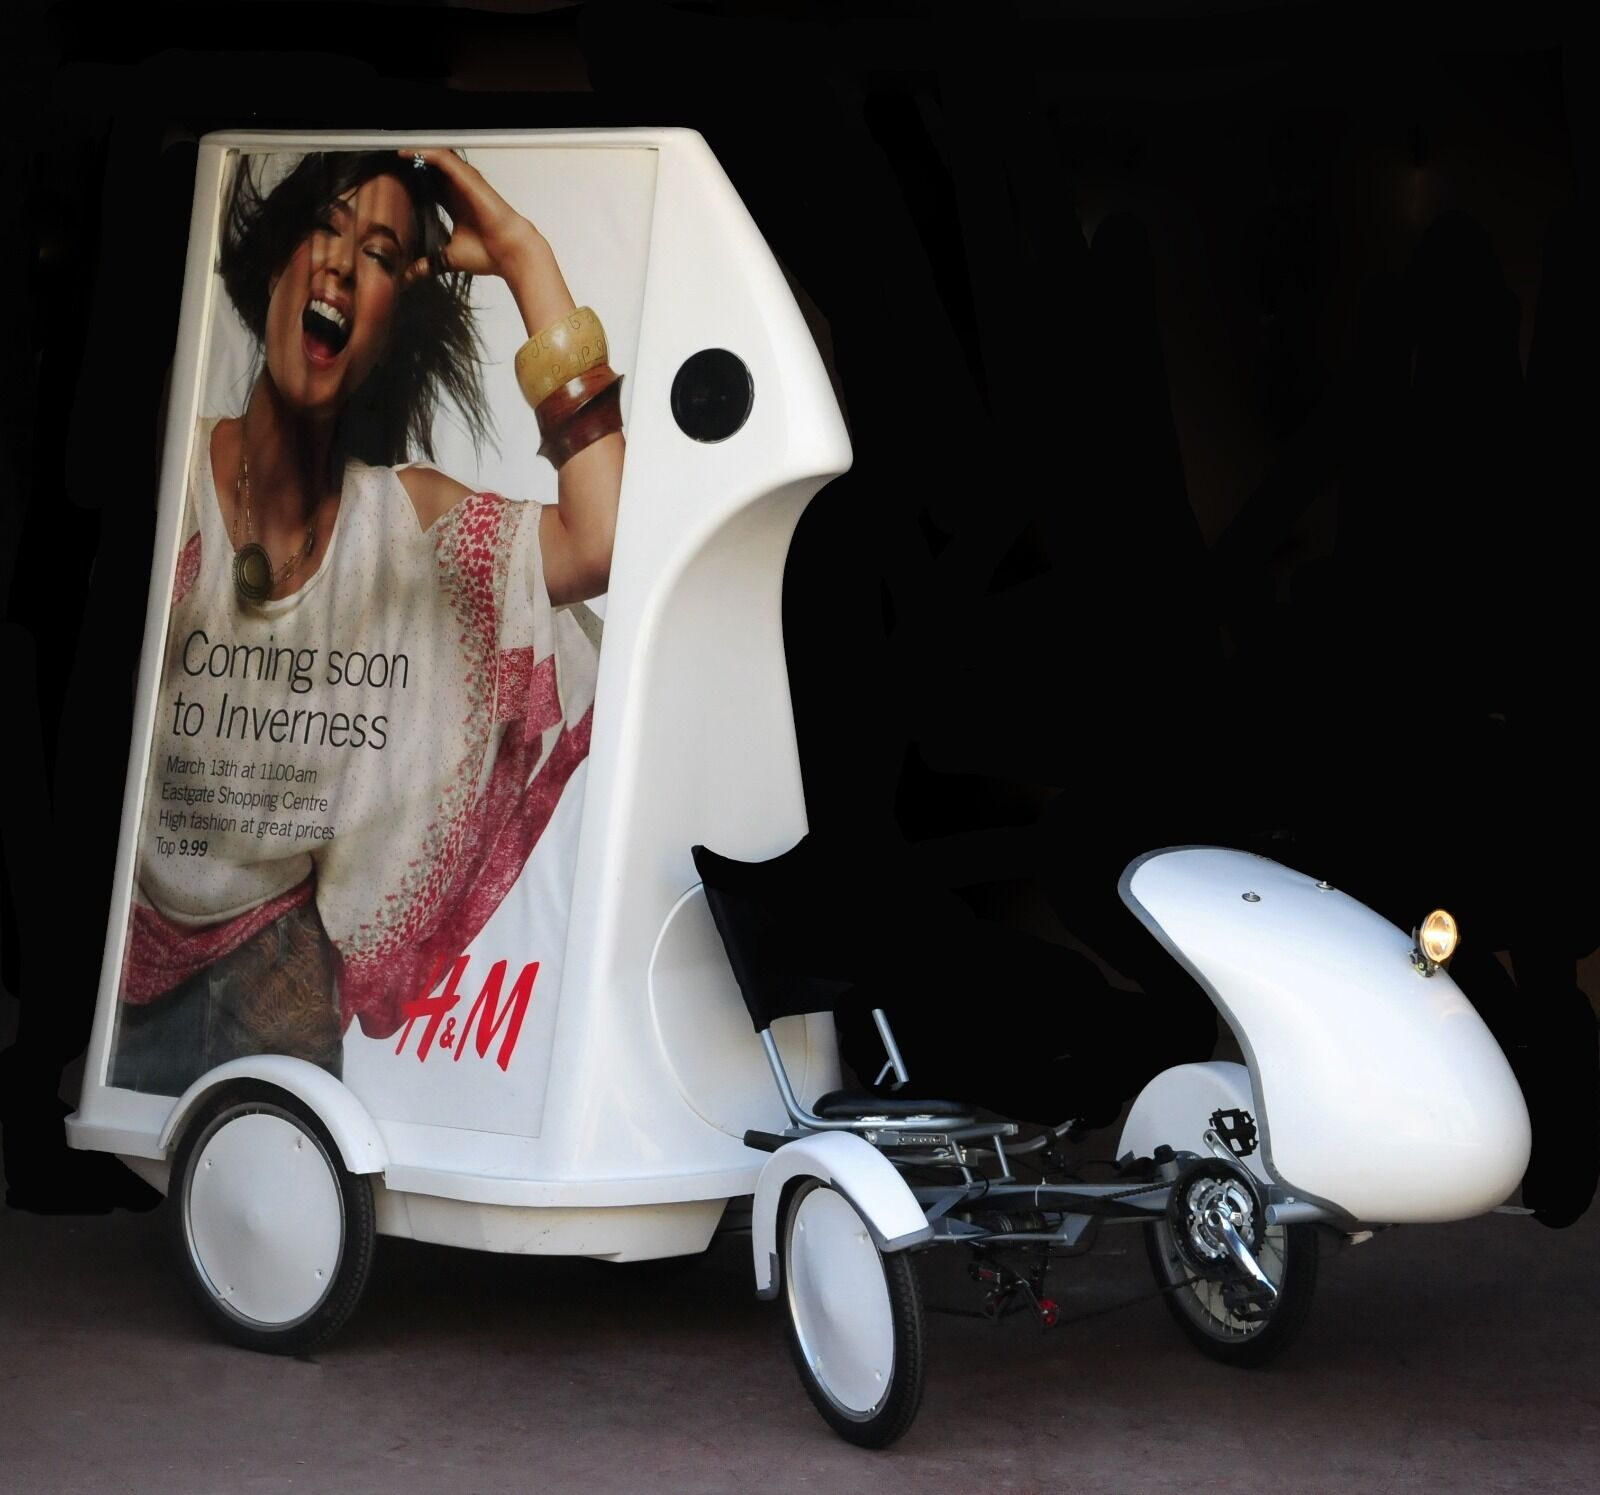 Adbikes with back-lit posters and integrated sound systems, interior storage.